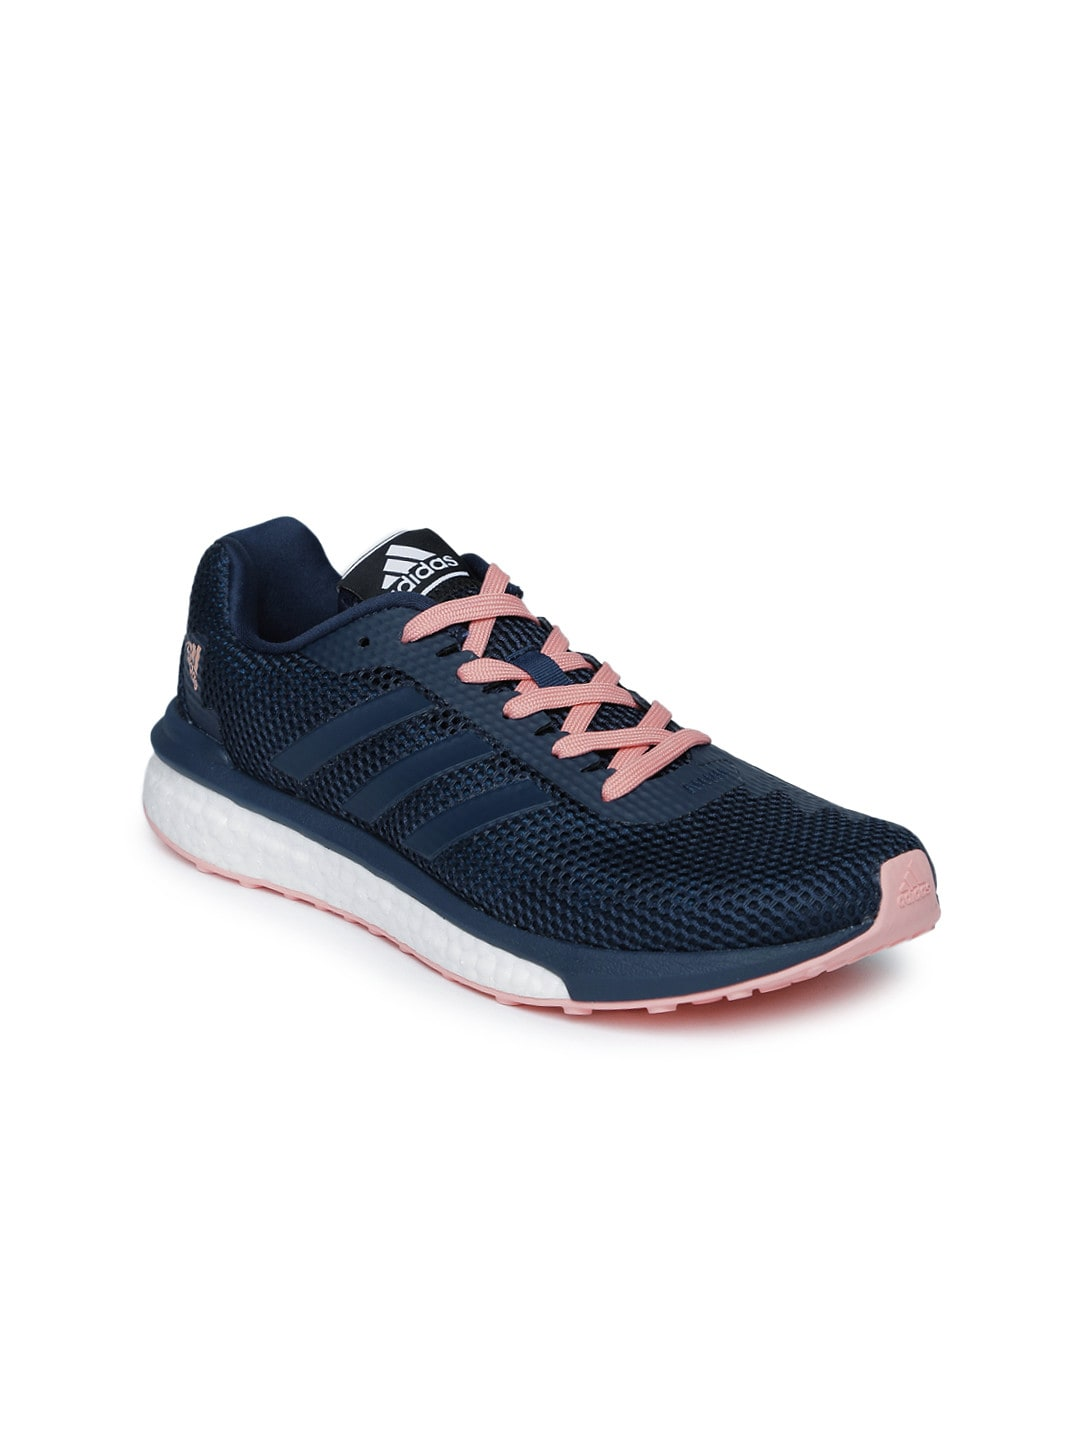 2e9976e7be92 Adidas bb1637 Women Navy Vengeful Running Shoes - Best Price in ...